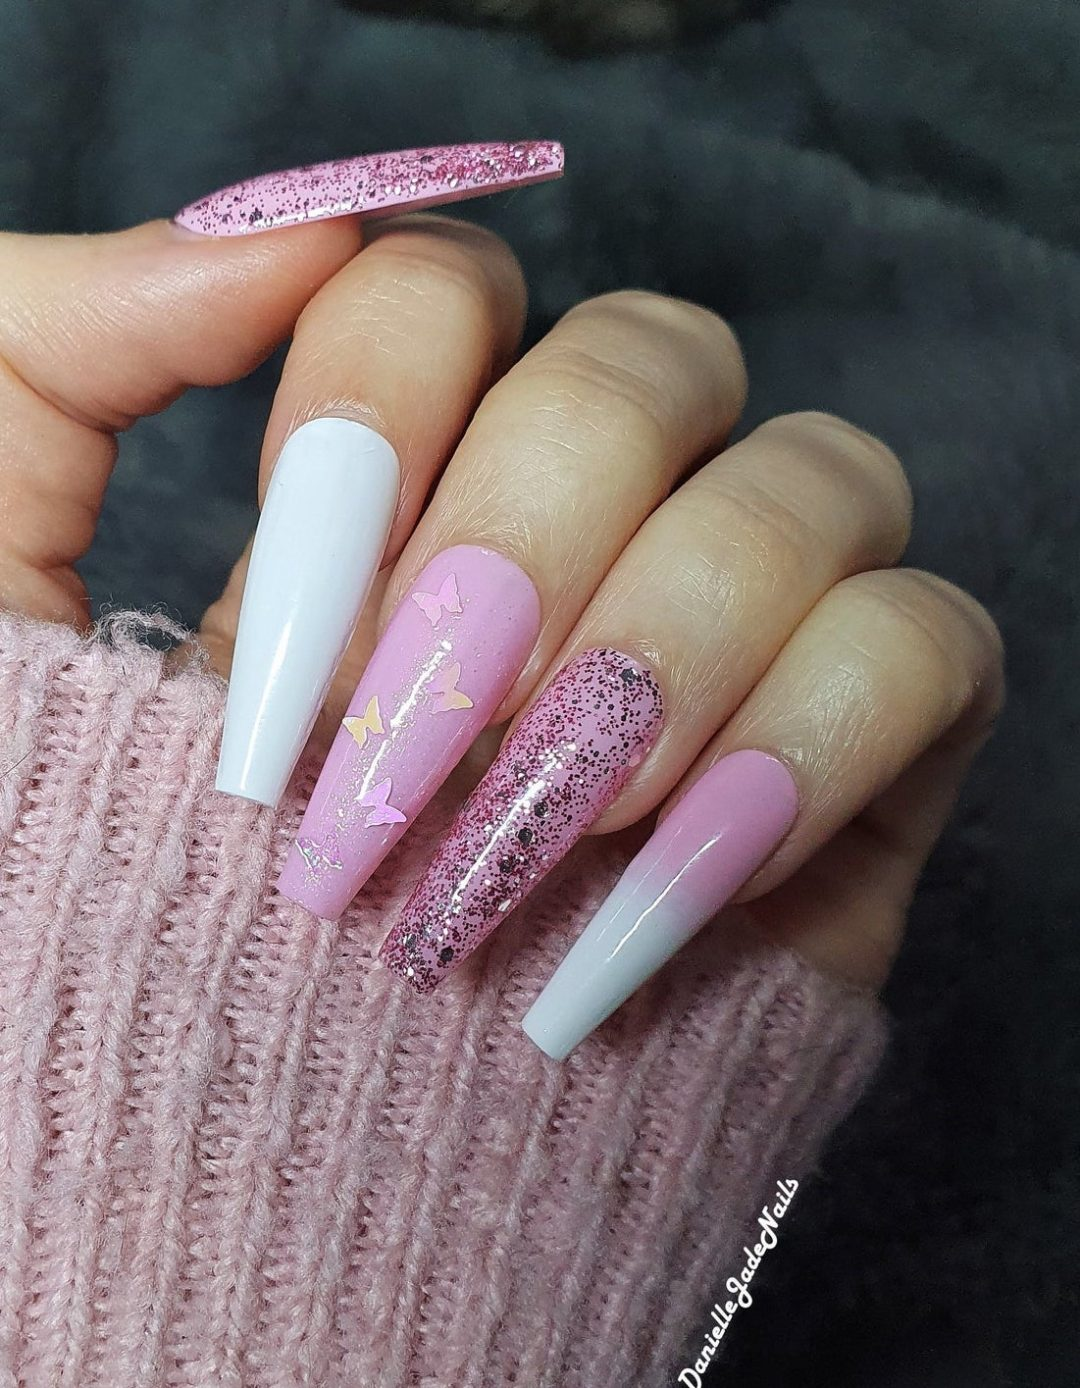 White and pink ombre nails with glitter and butterflies